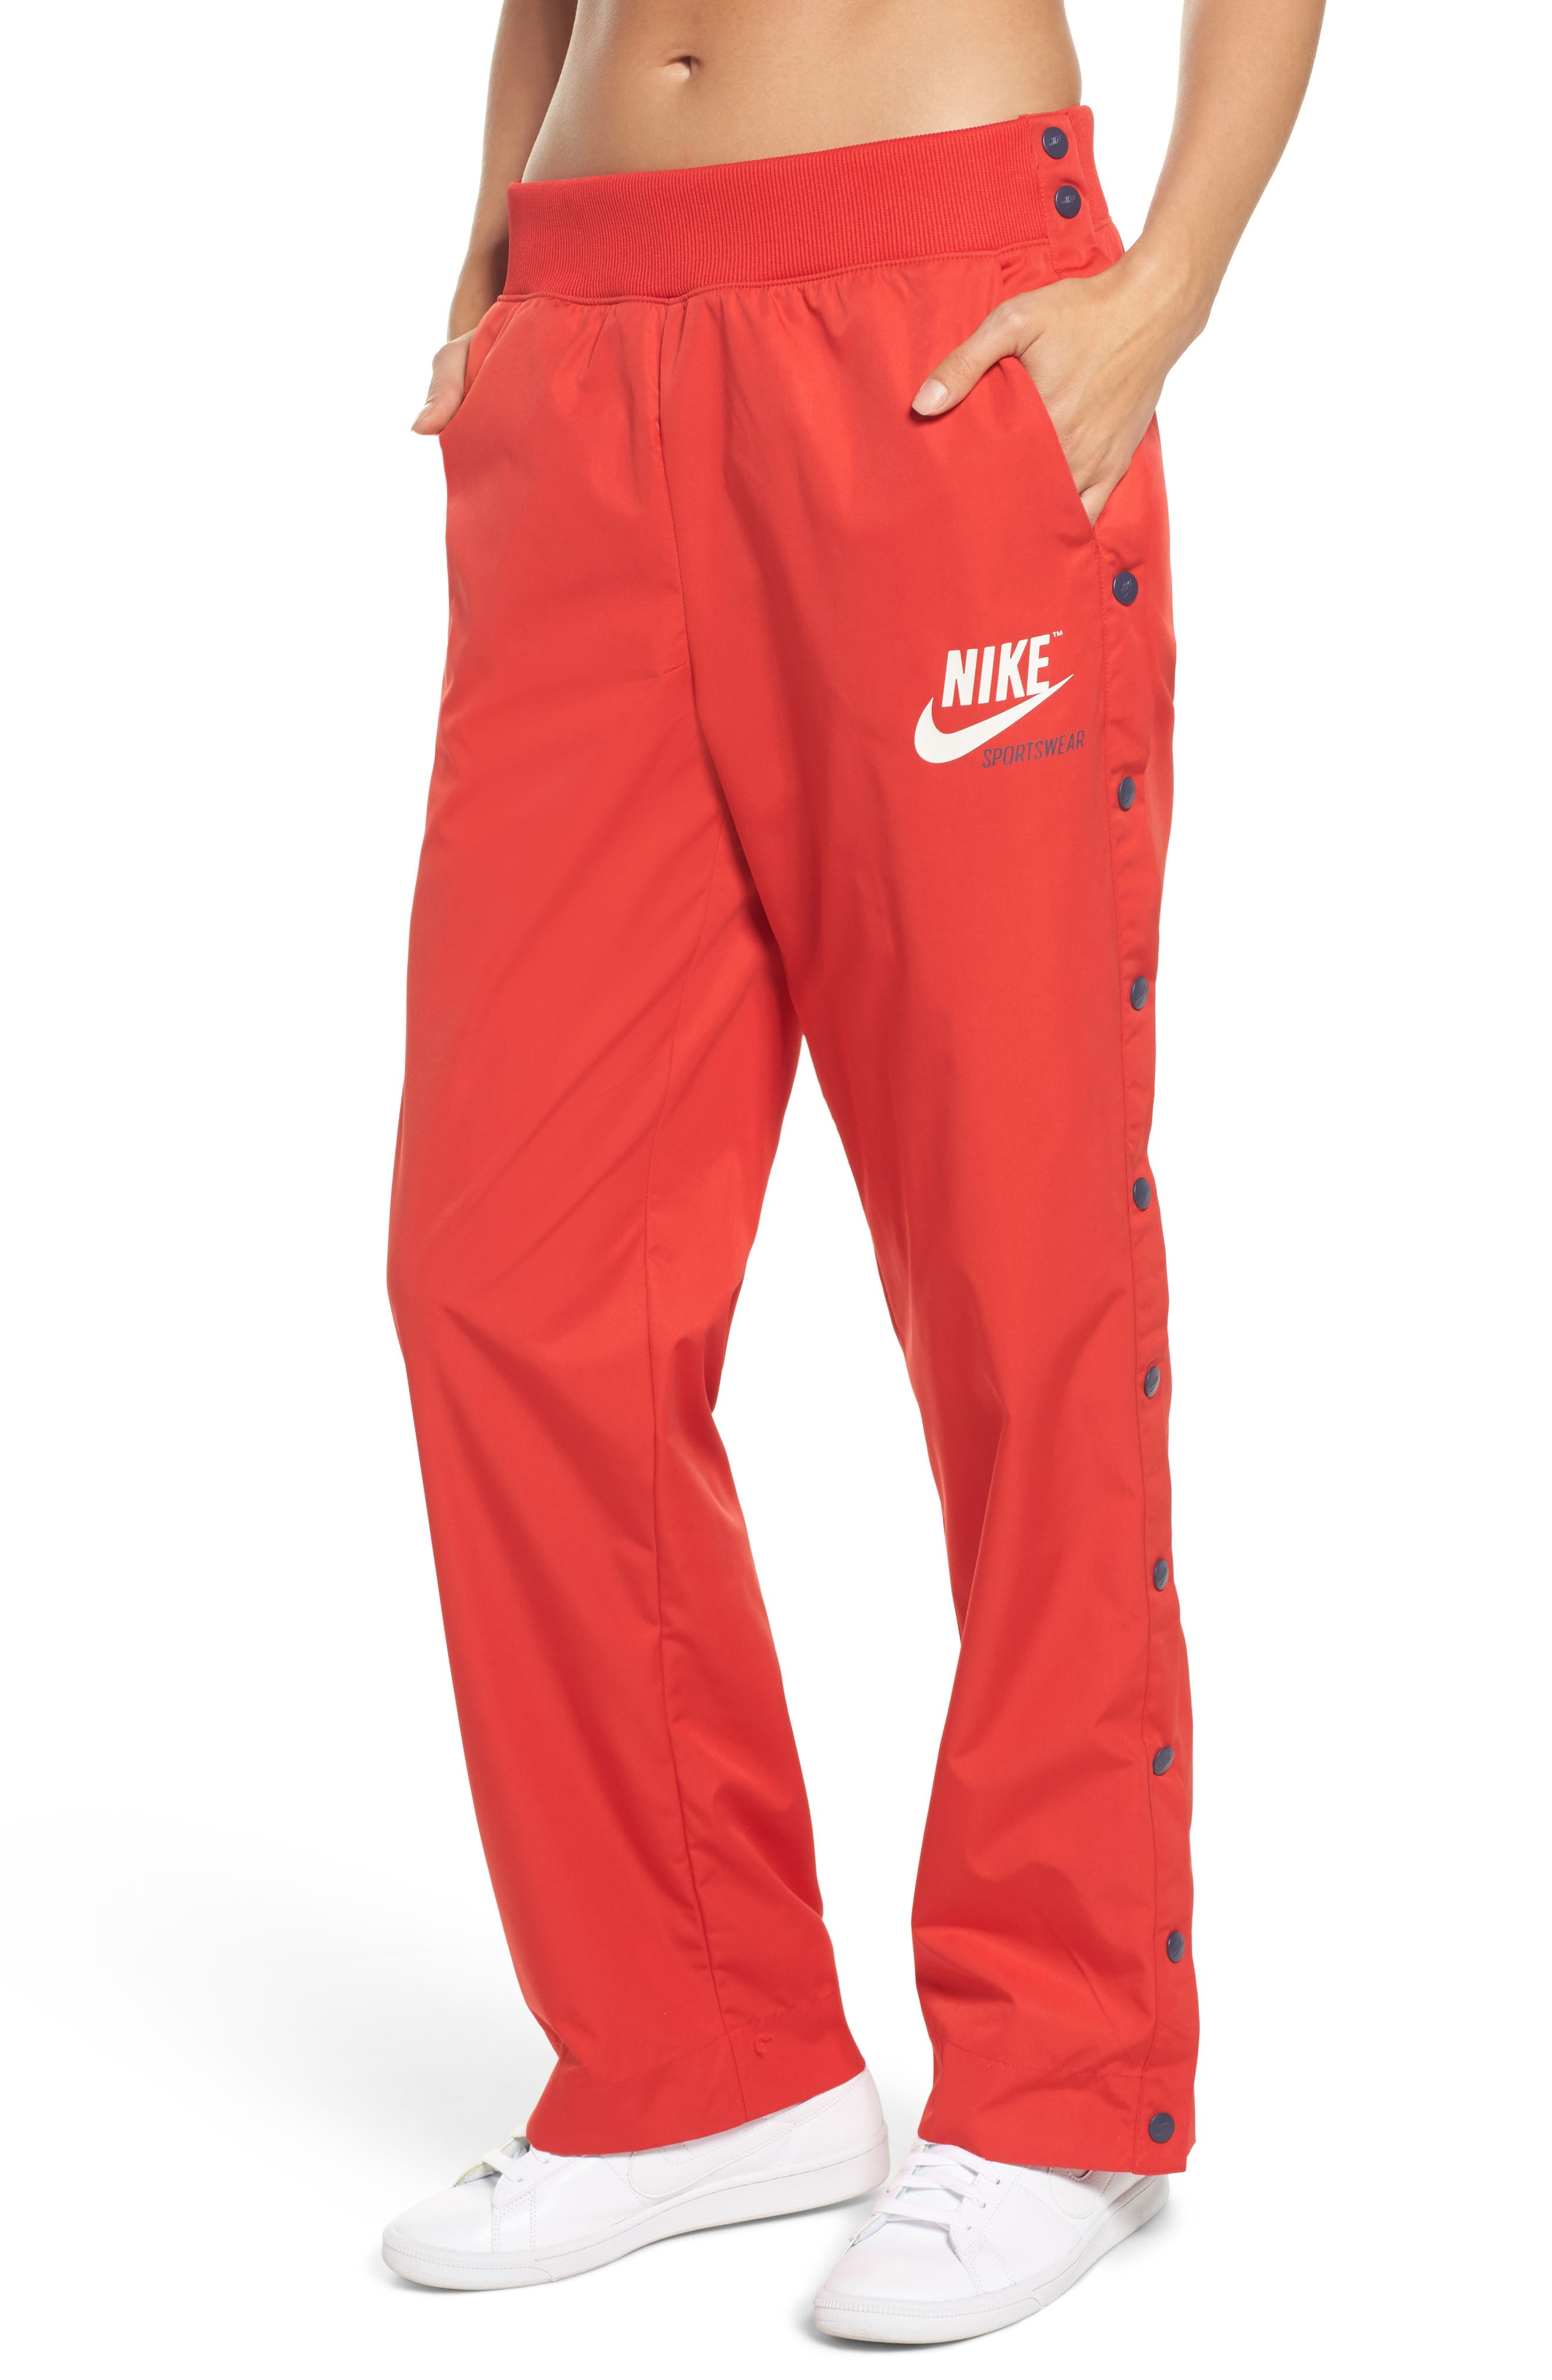 Sportswear Archive Snap Track Pants,                         Main,                         color, University Red/ Thunder Blue